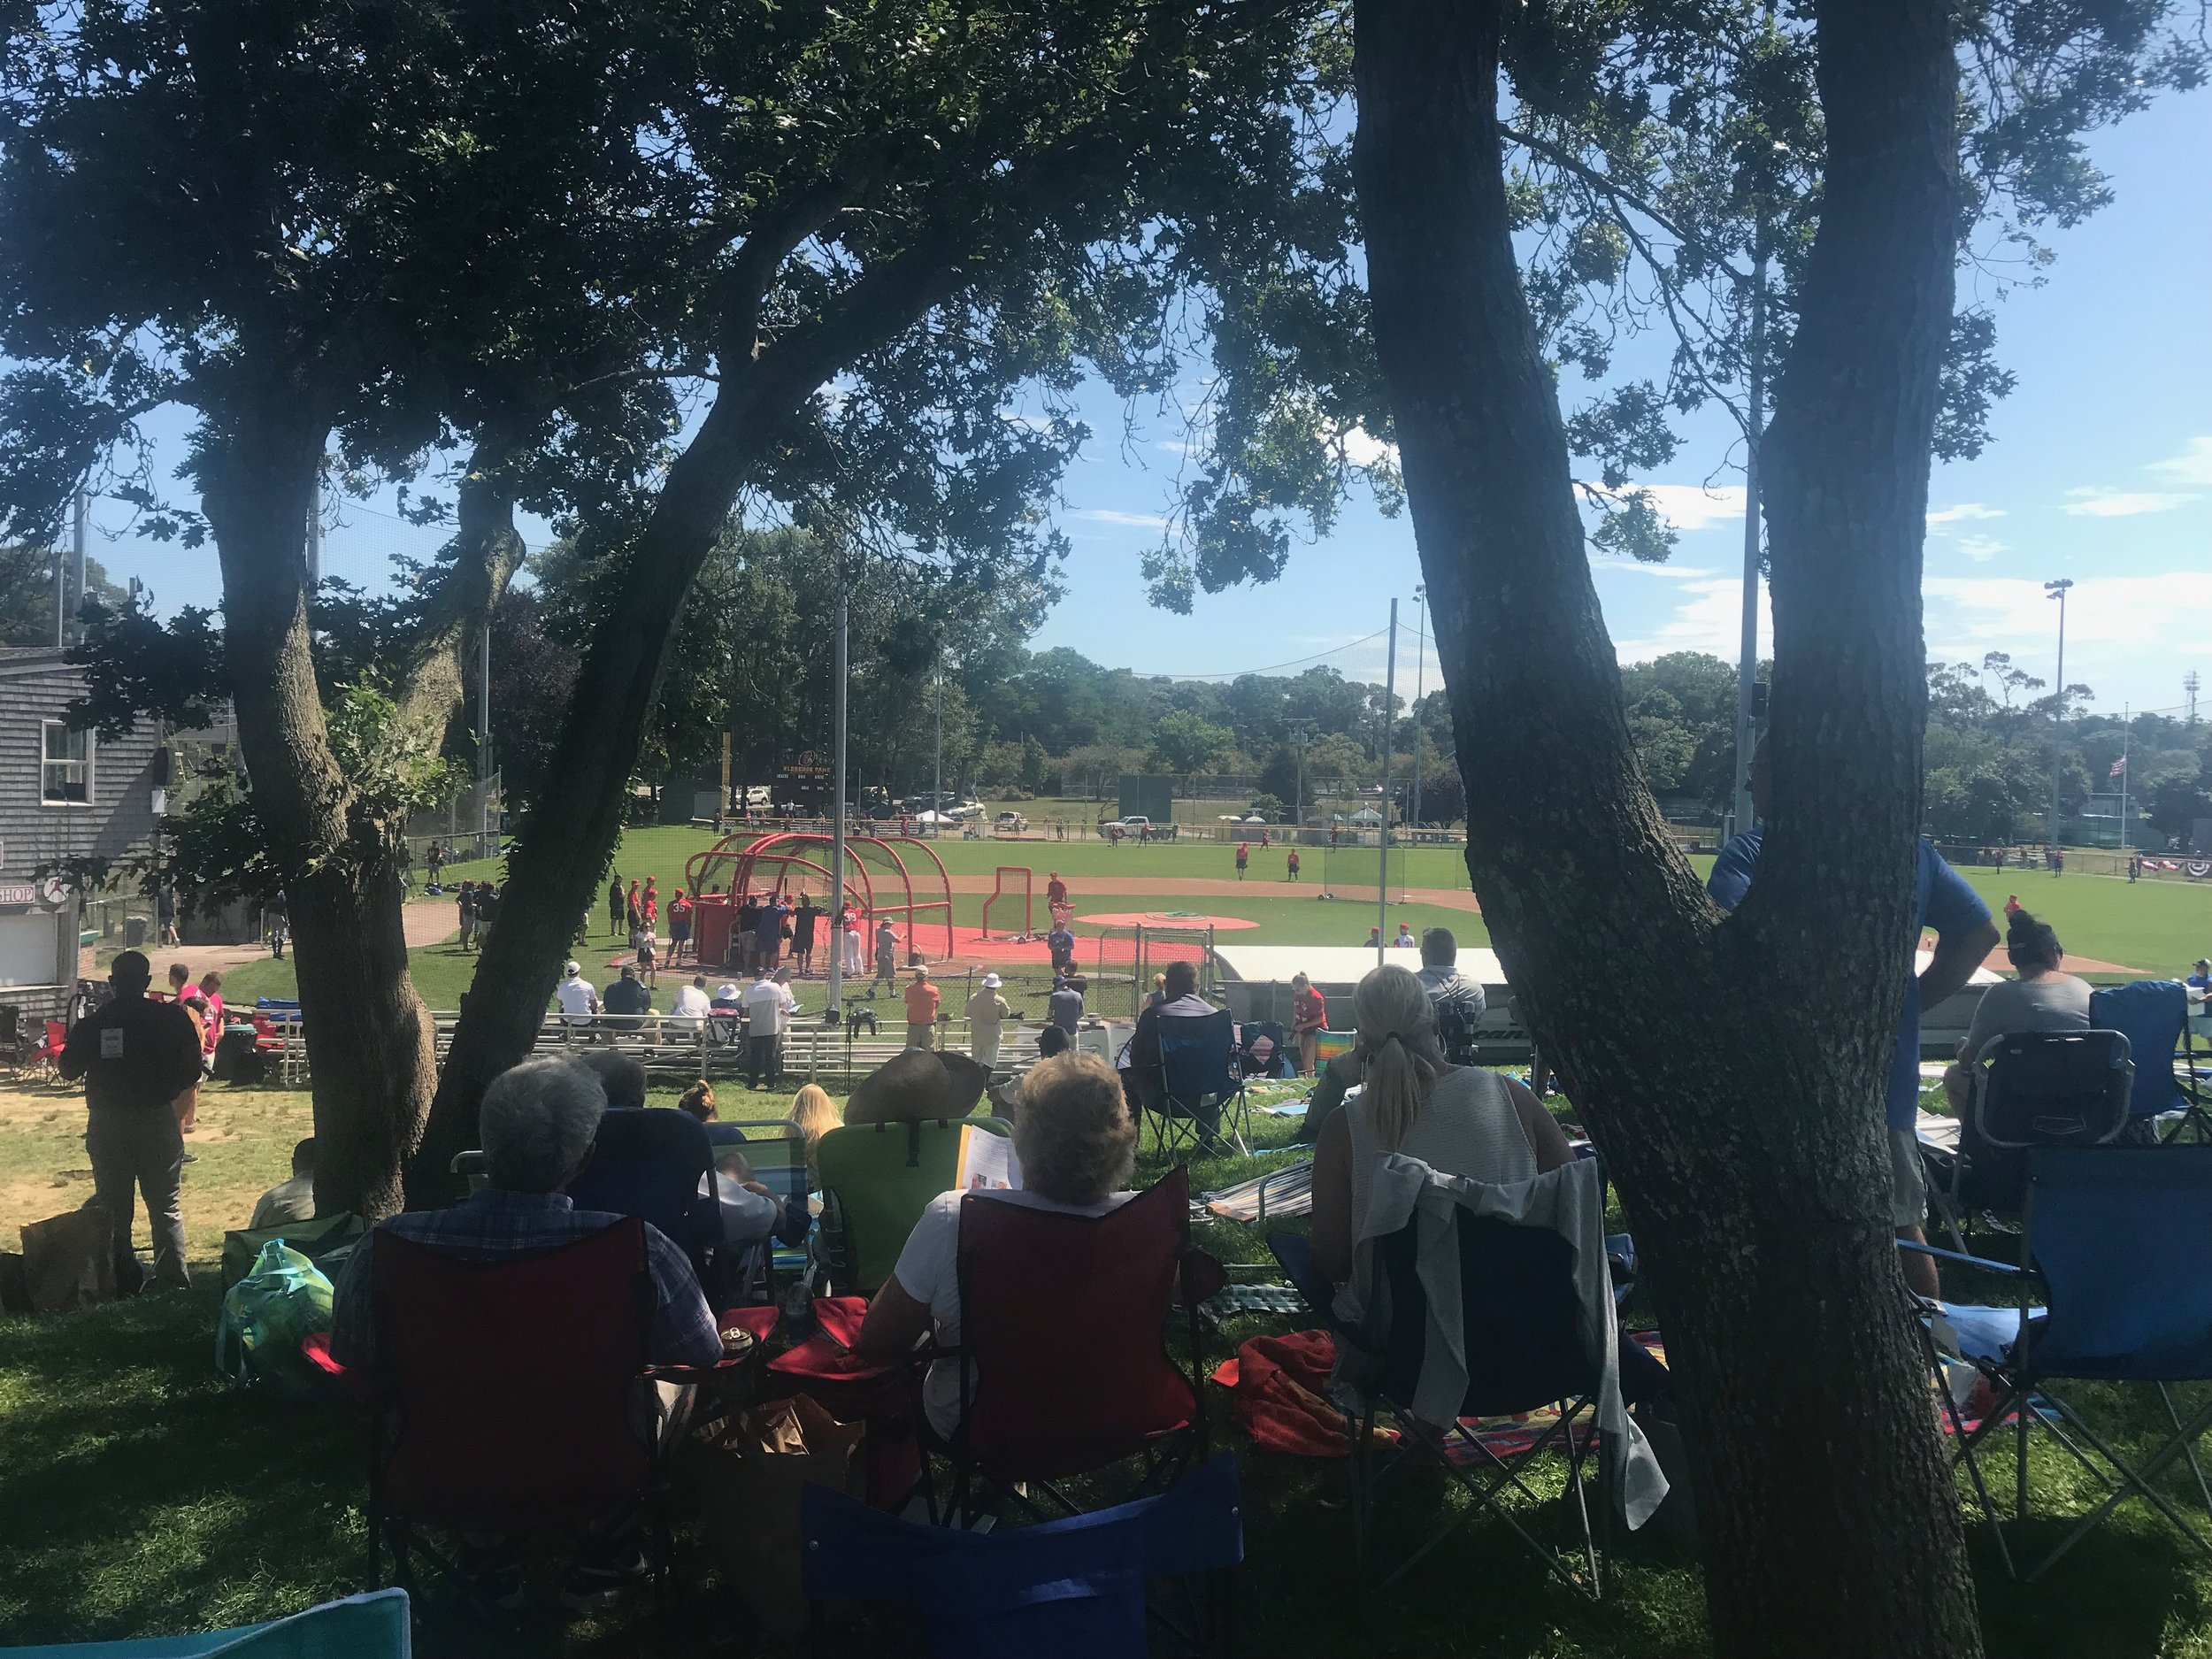 Fans swarmed Eldredge Park Early to take in the sights and sounds of the 2019 Cape League All Star Game.  Photo by Harrison Meyers